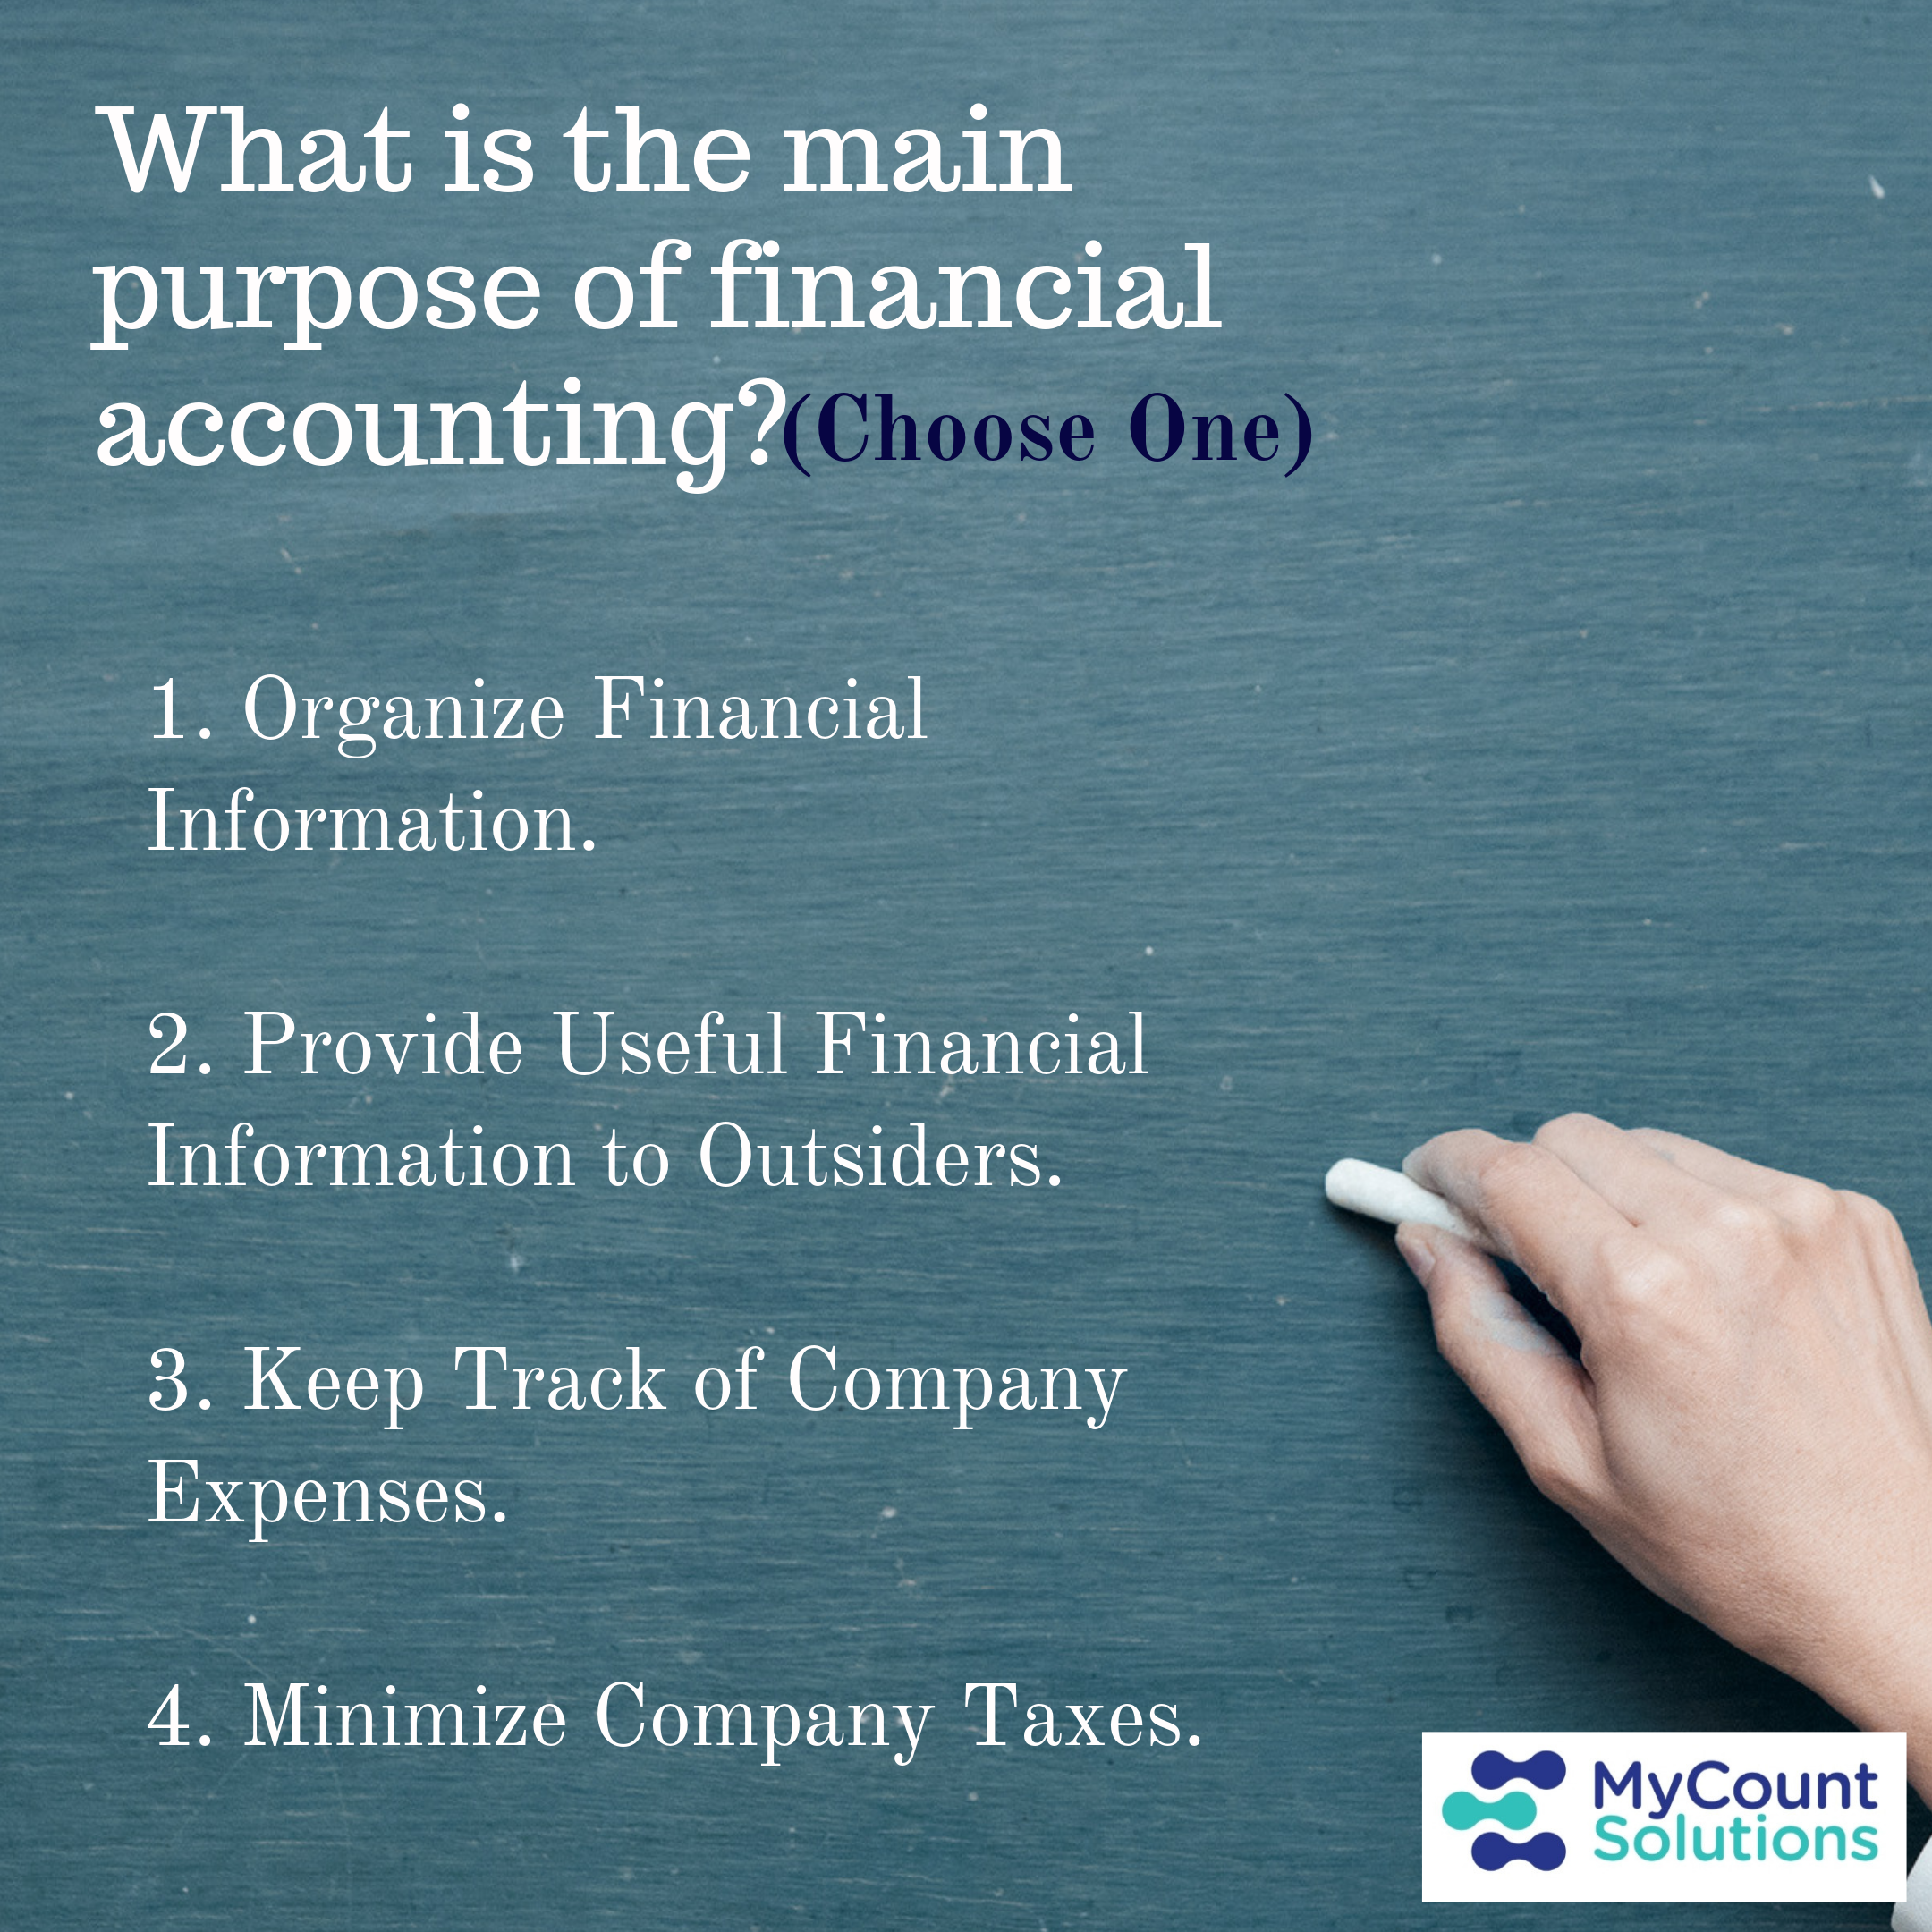 What Is The Main Purpose Of Financial Accounting